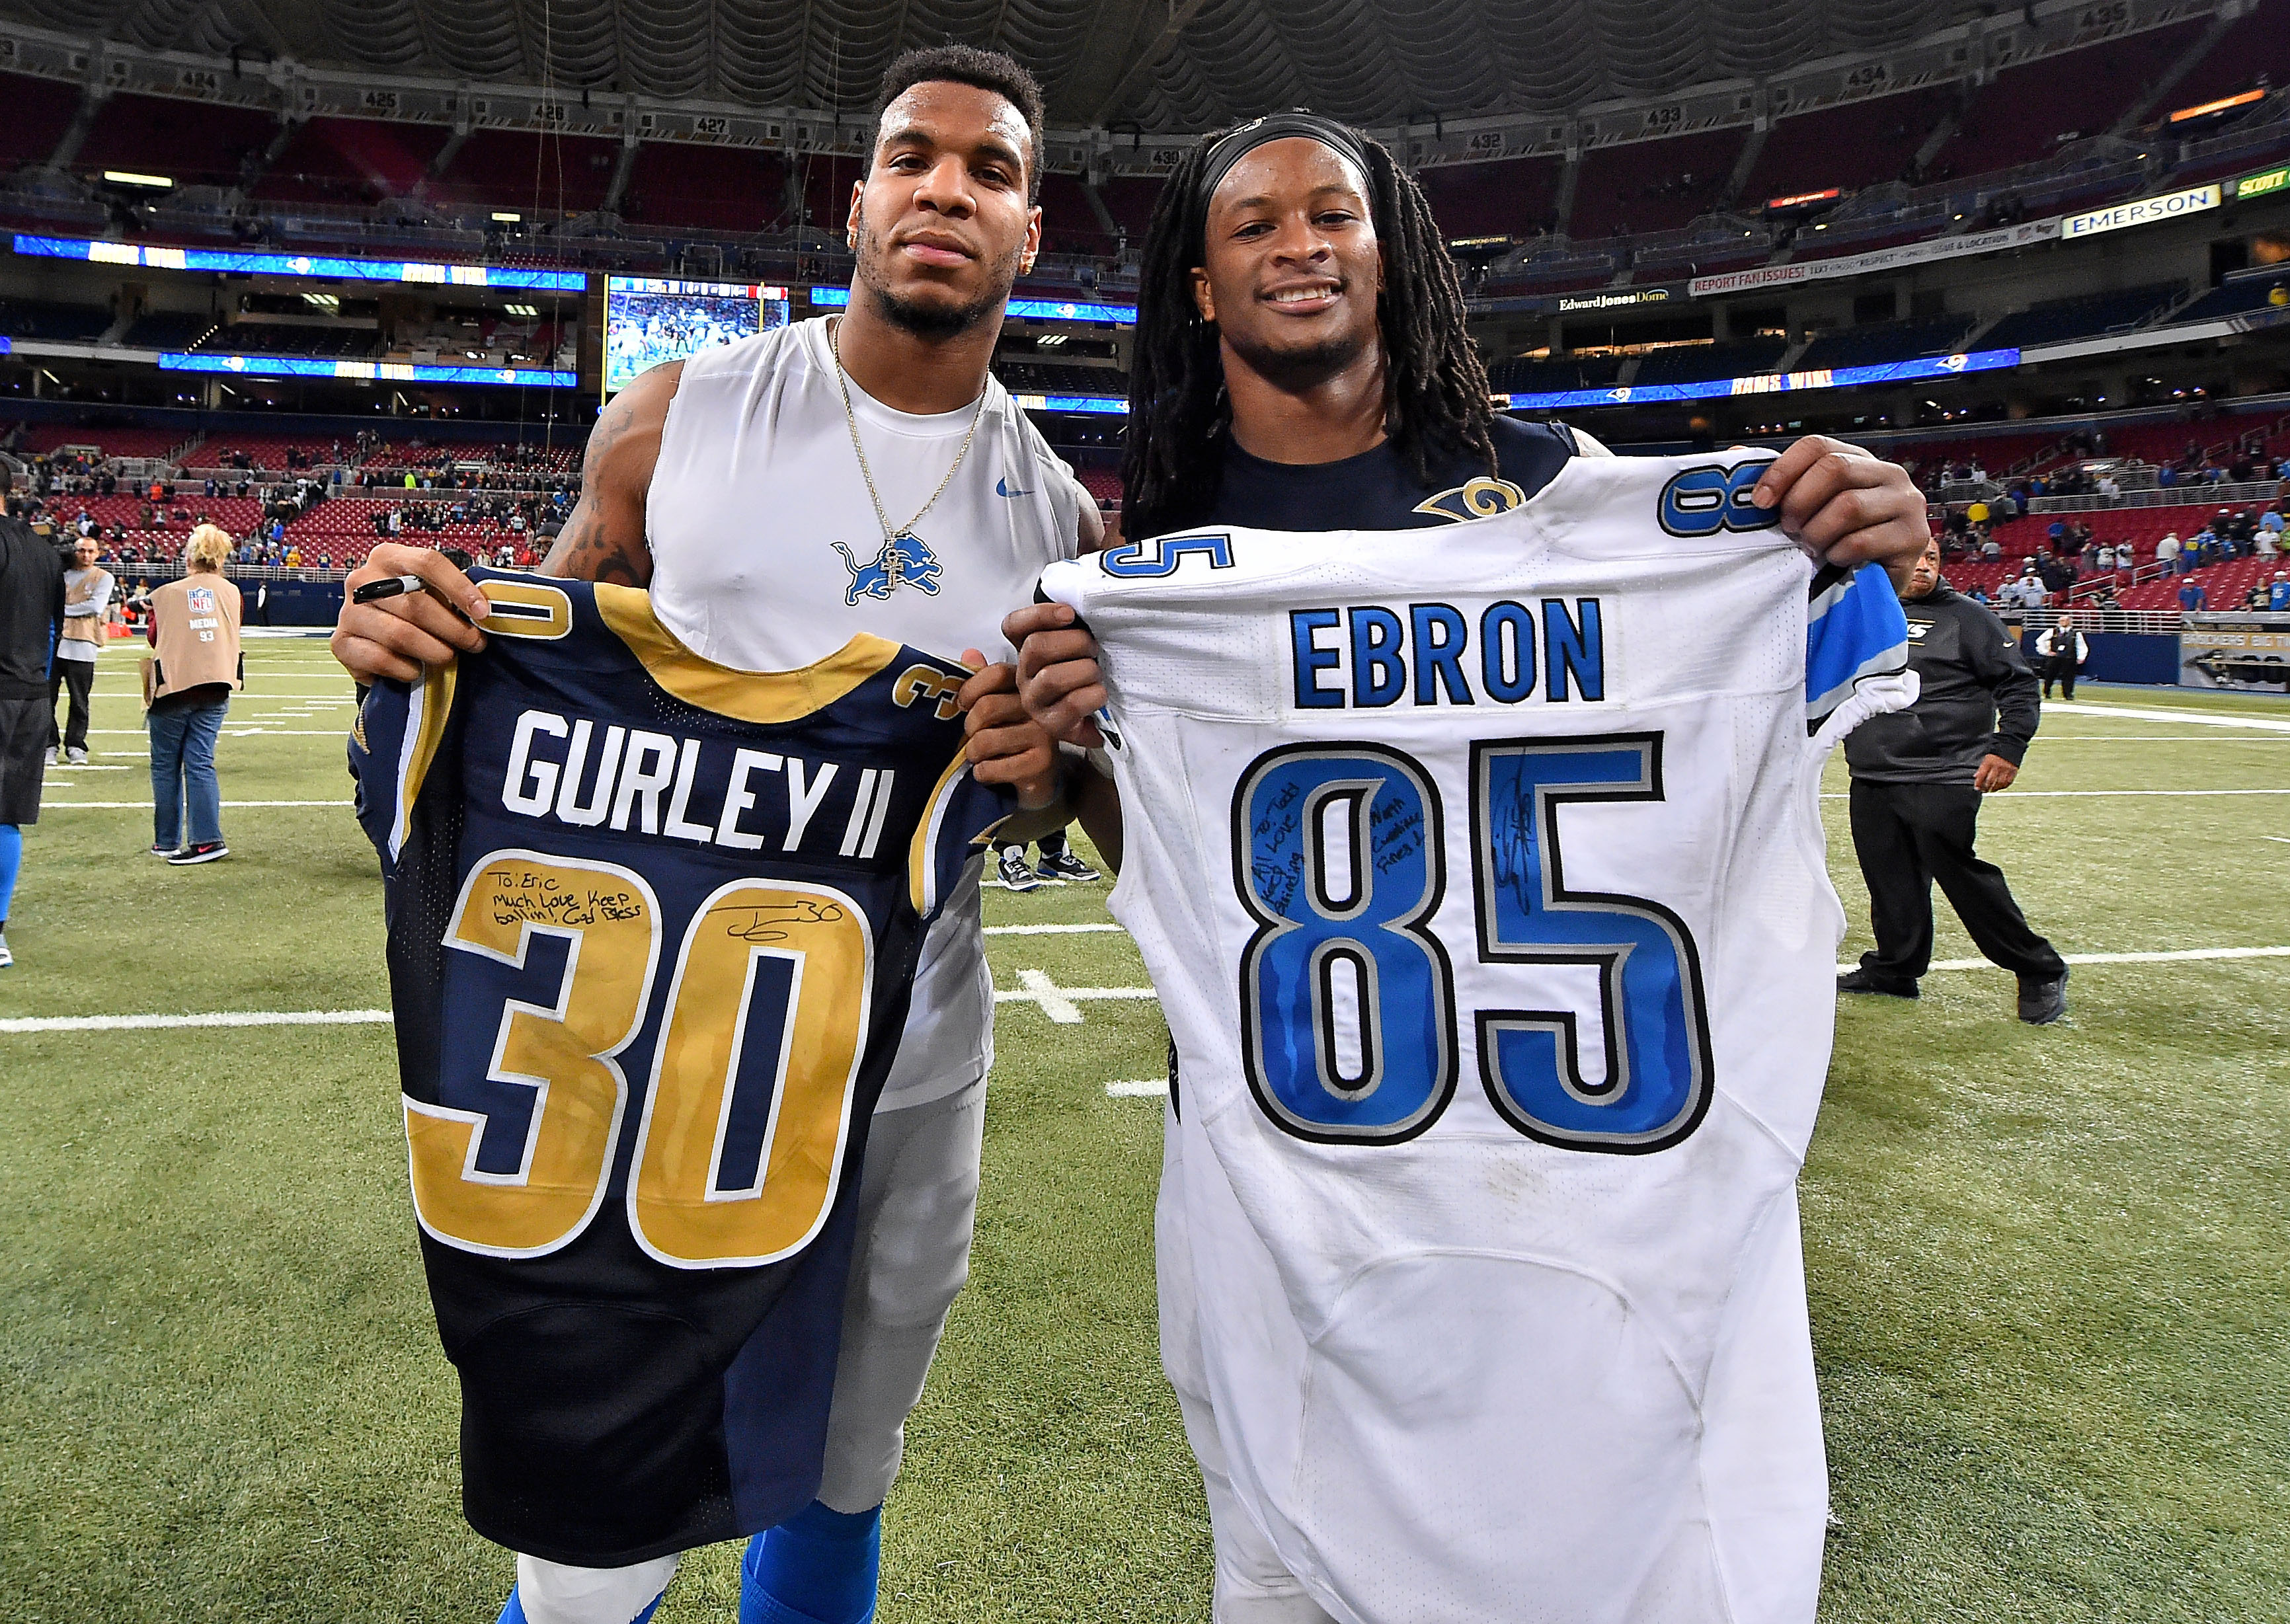 One jersey will be worth more than the other...